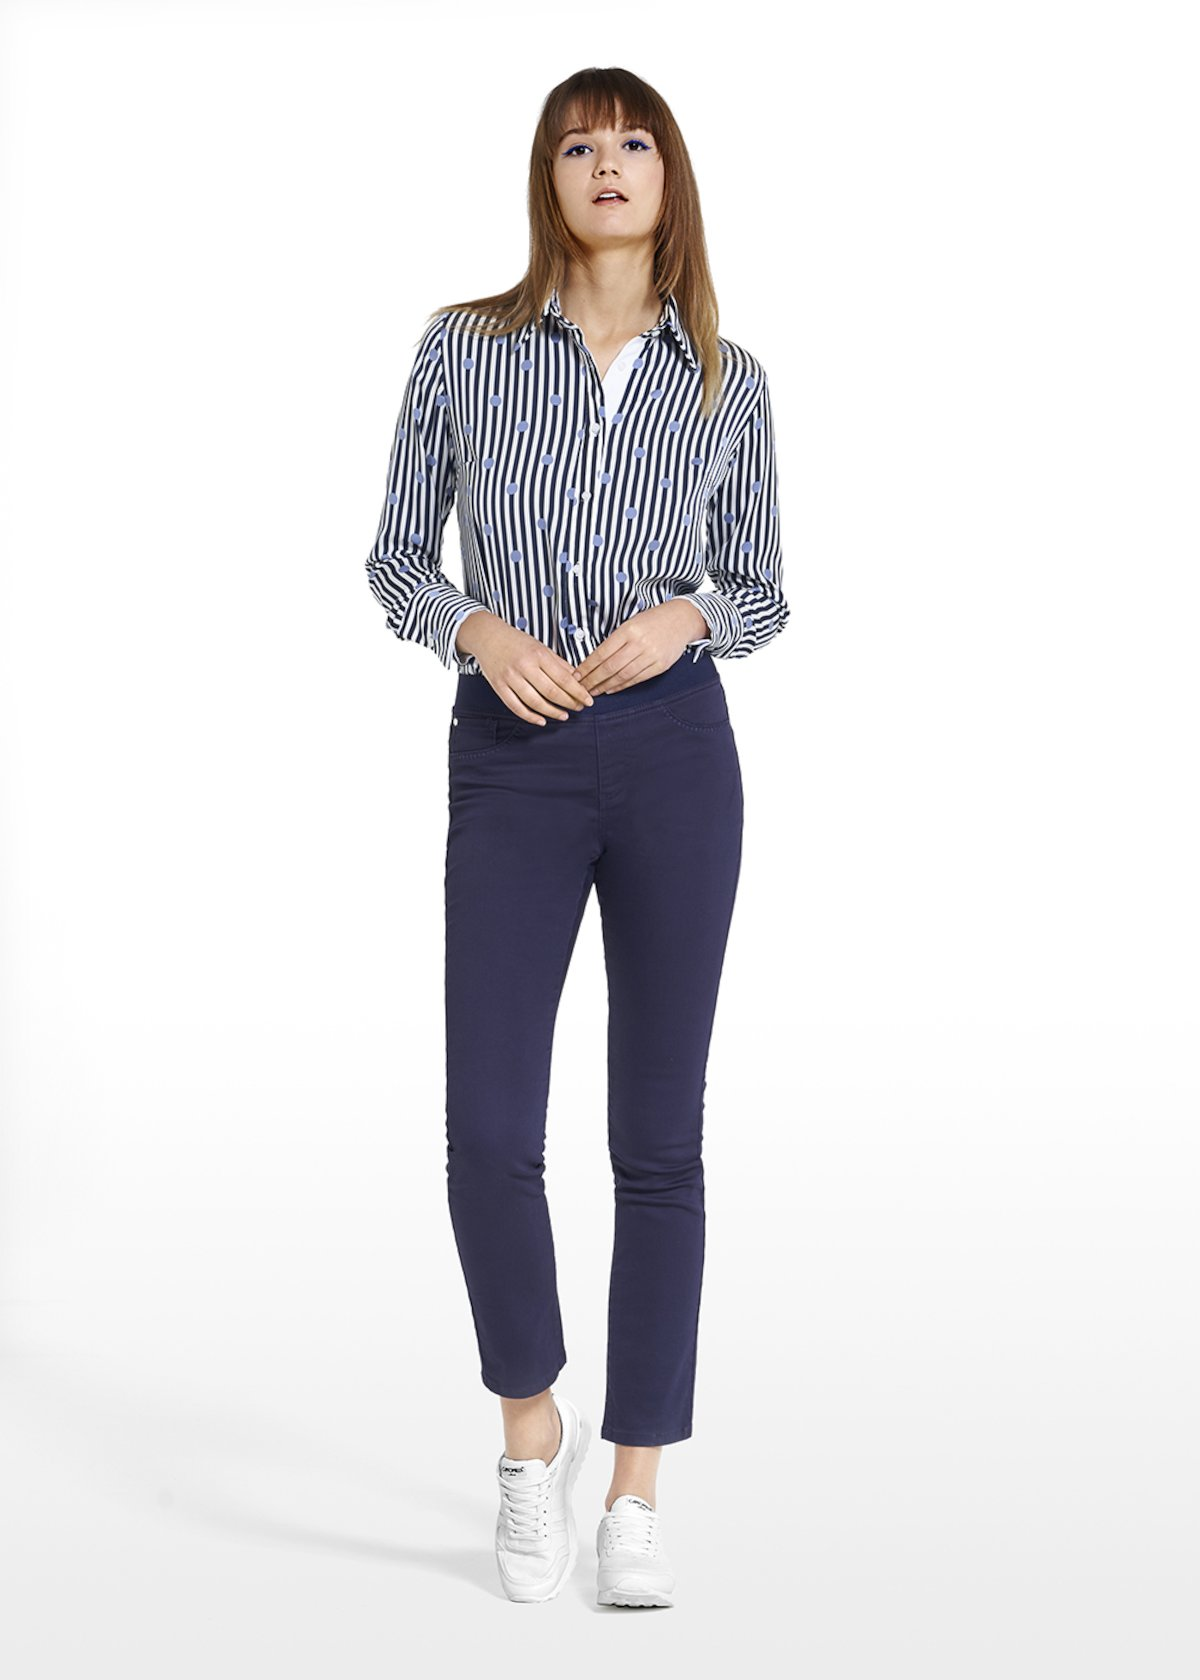 Pants Jeggins Daffy with knitted stitch around the pockets - Medium Blue - Woman